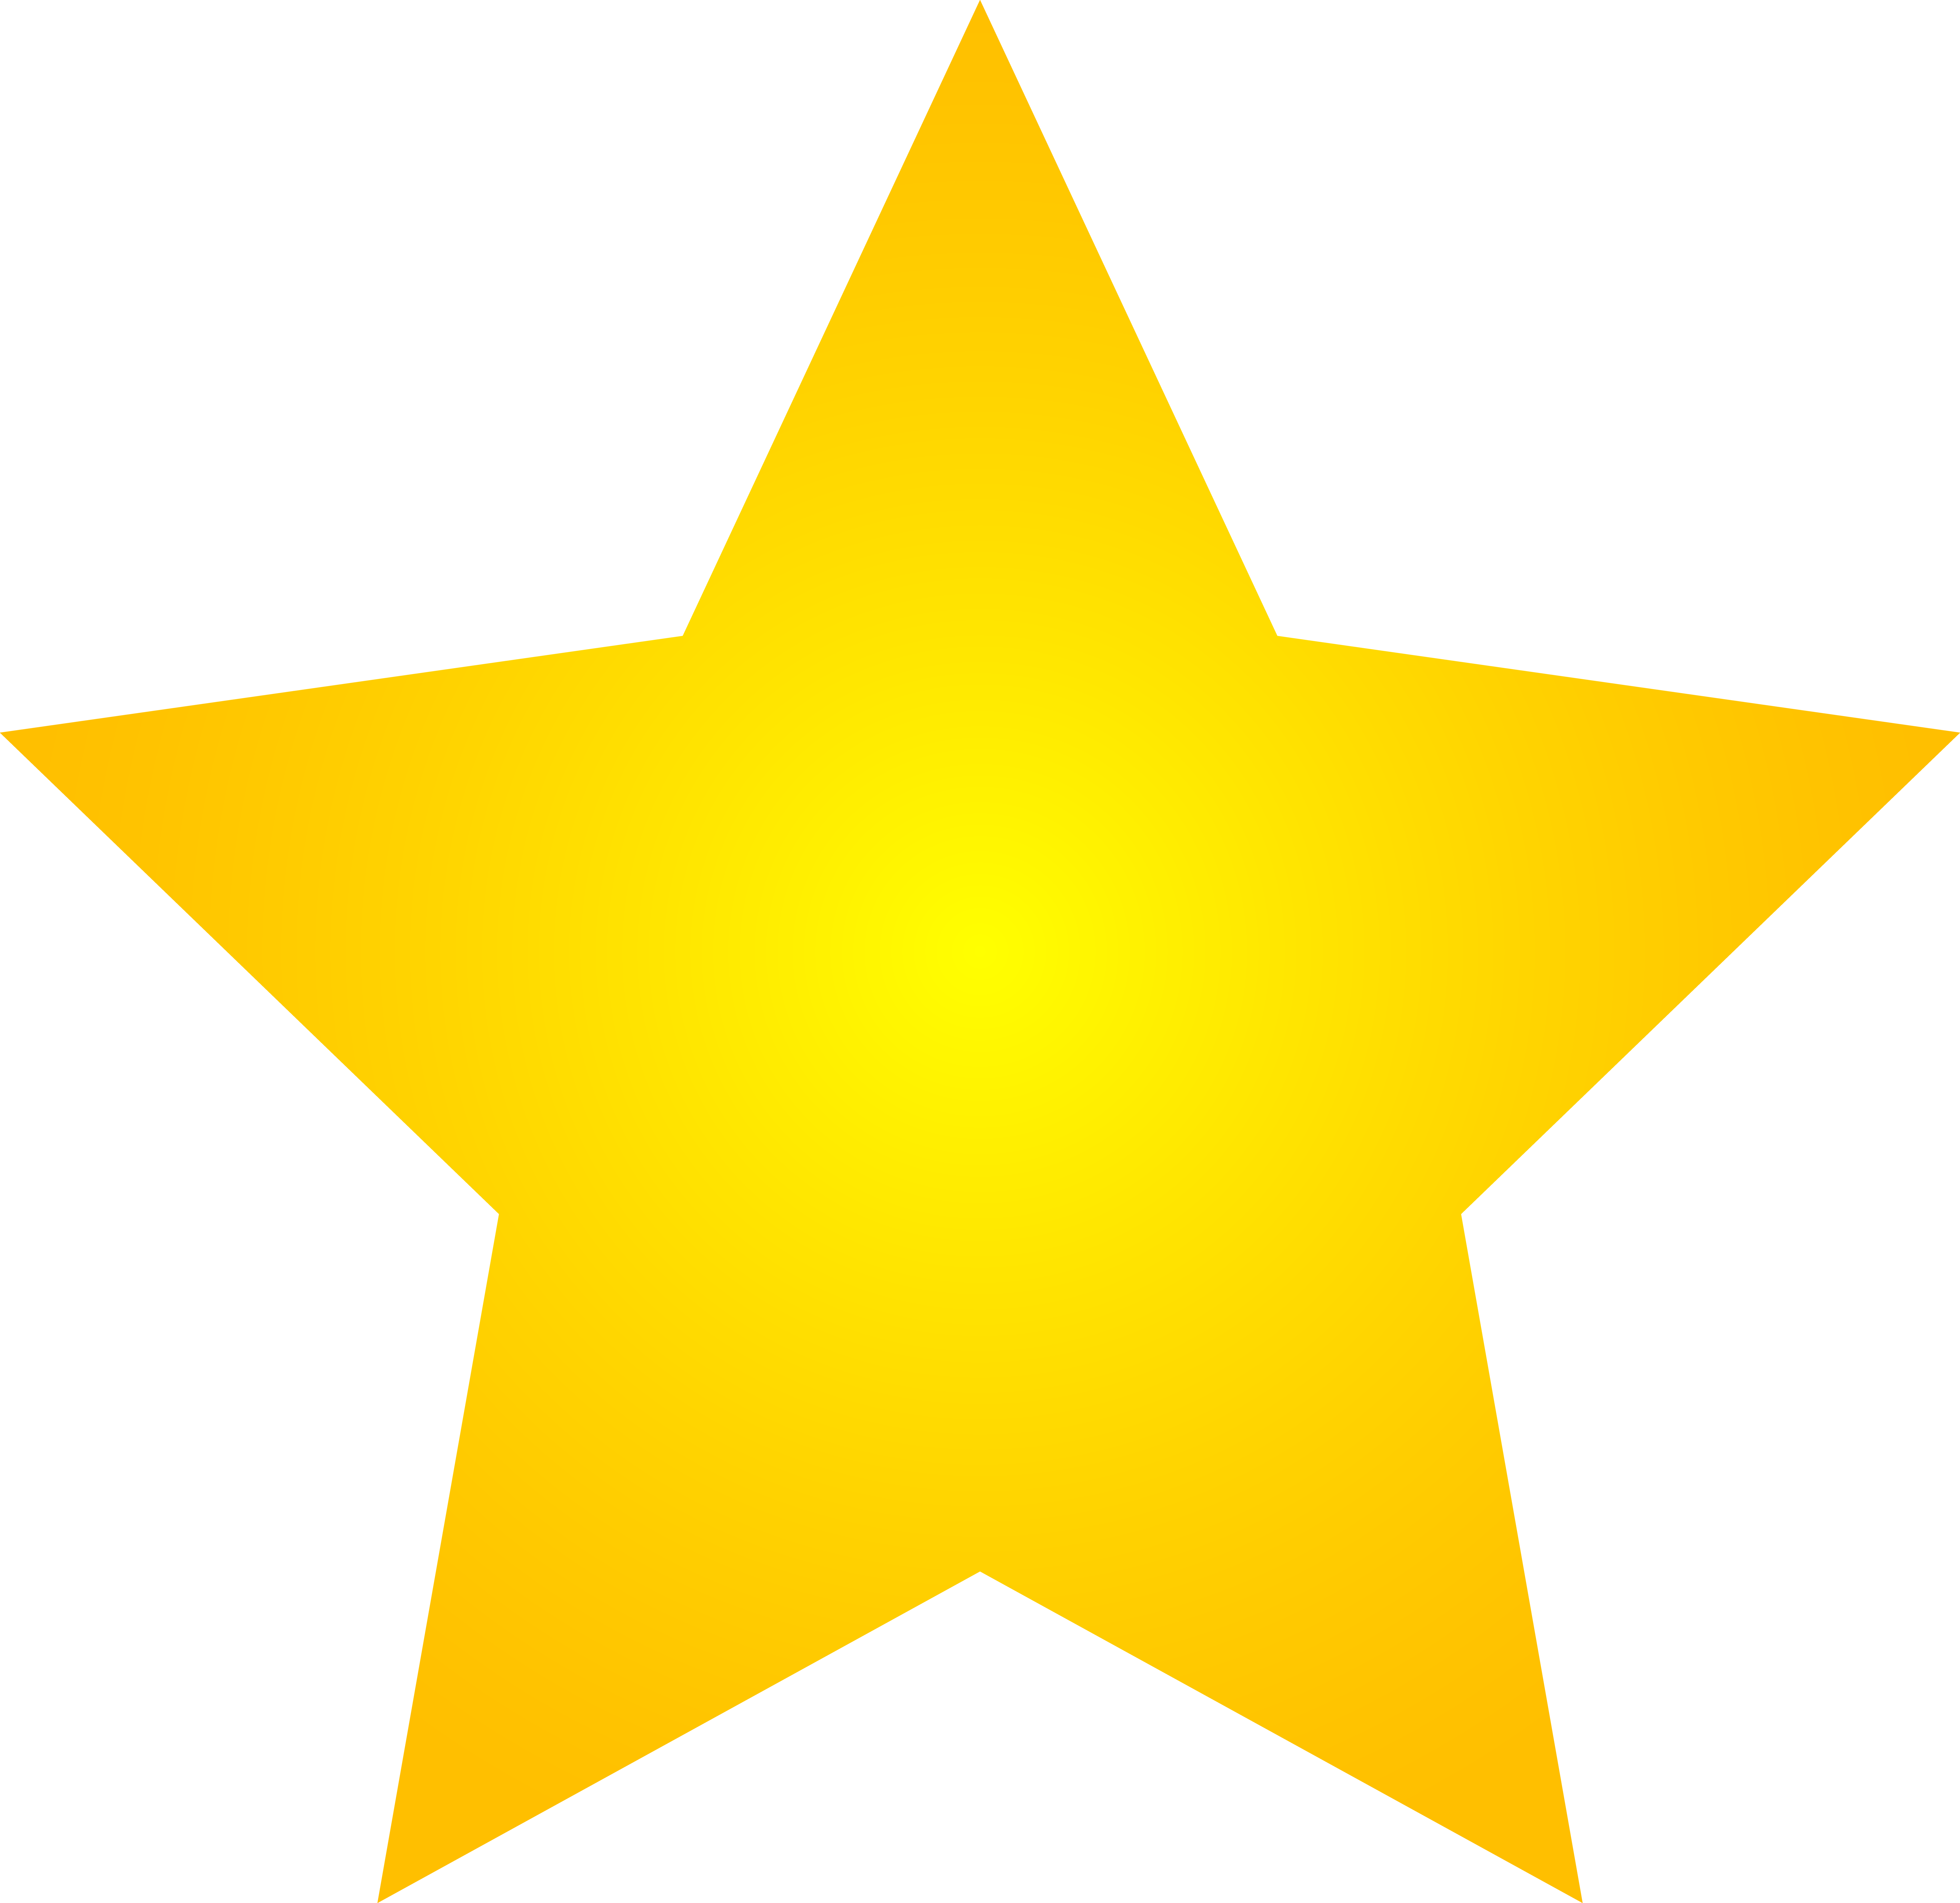 Yellow star clipart no background.